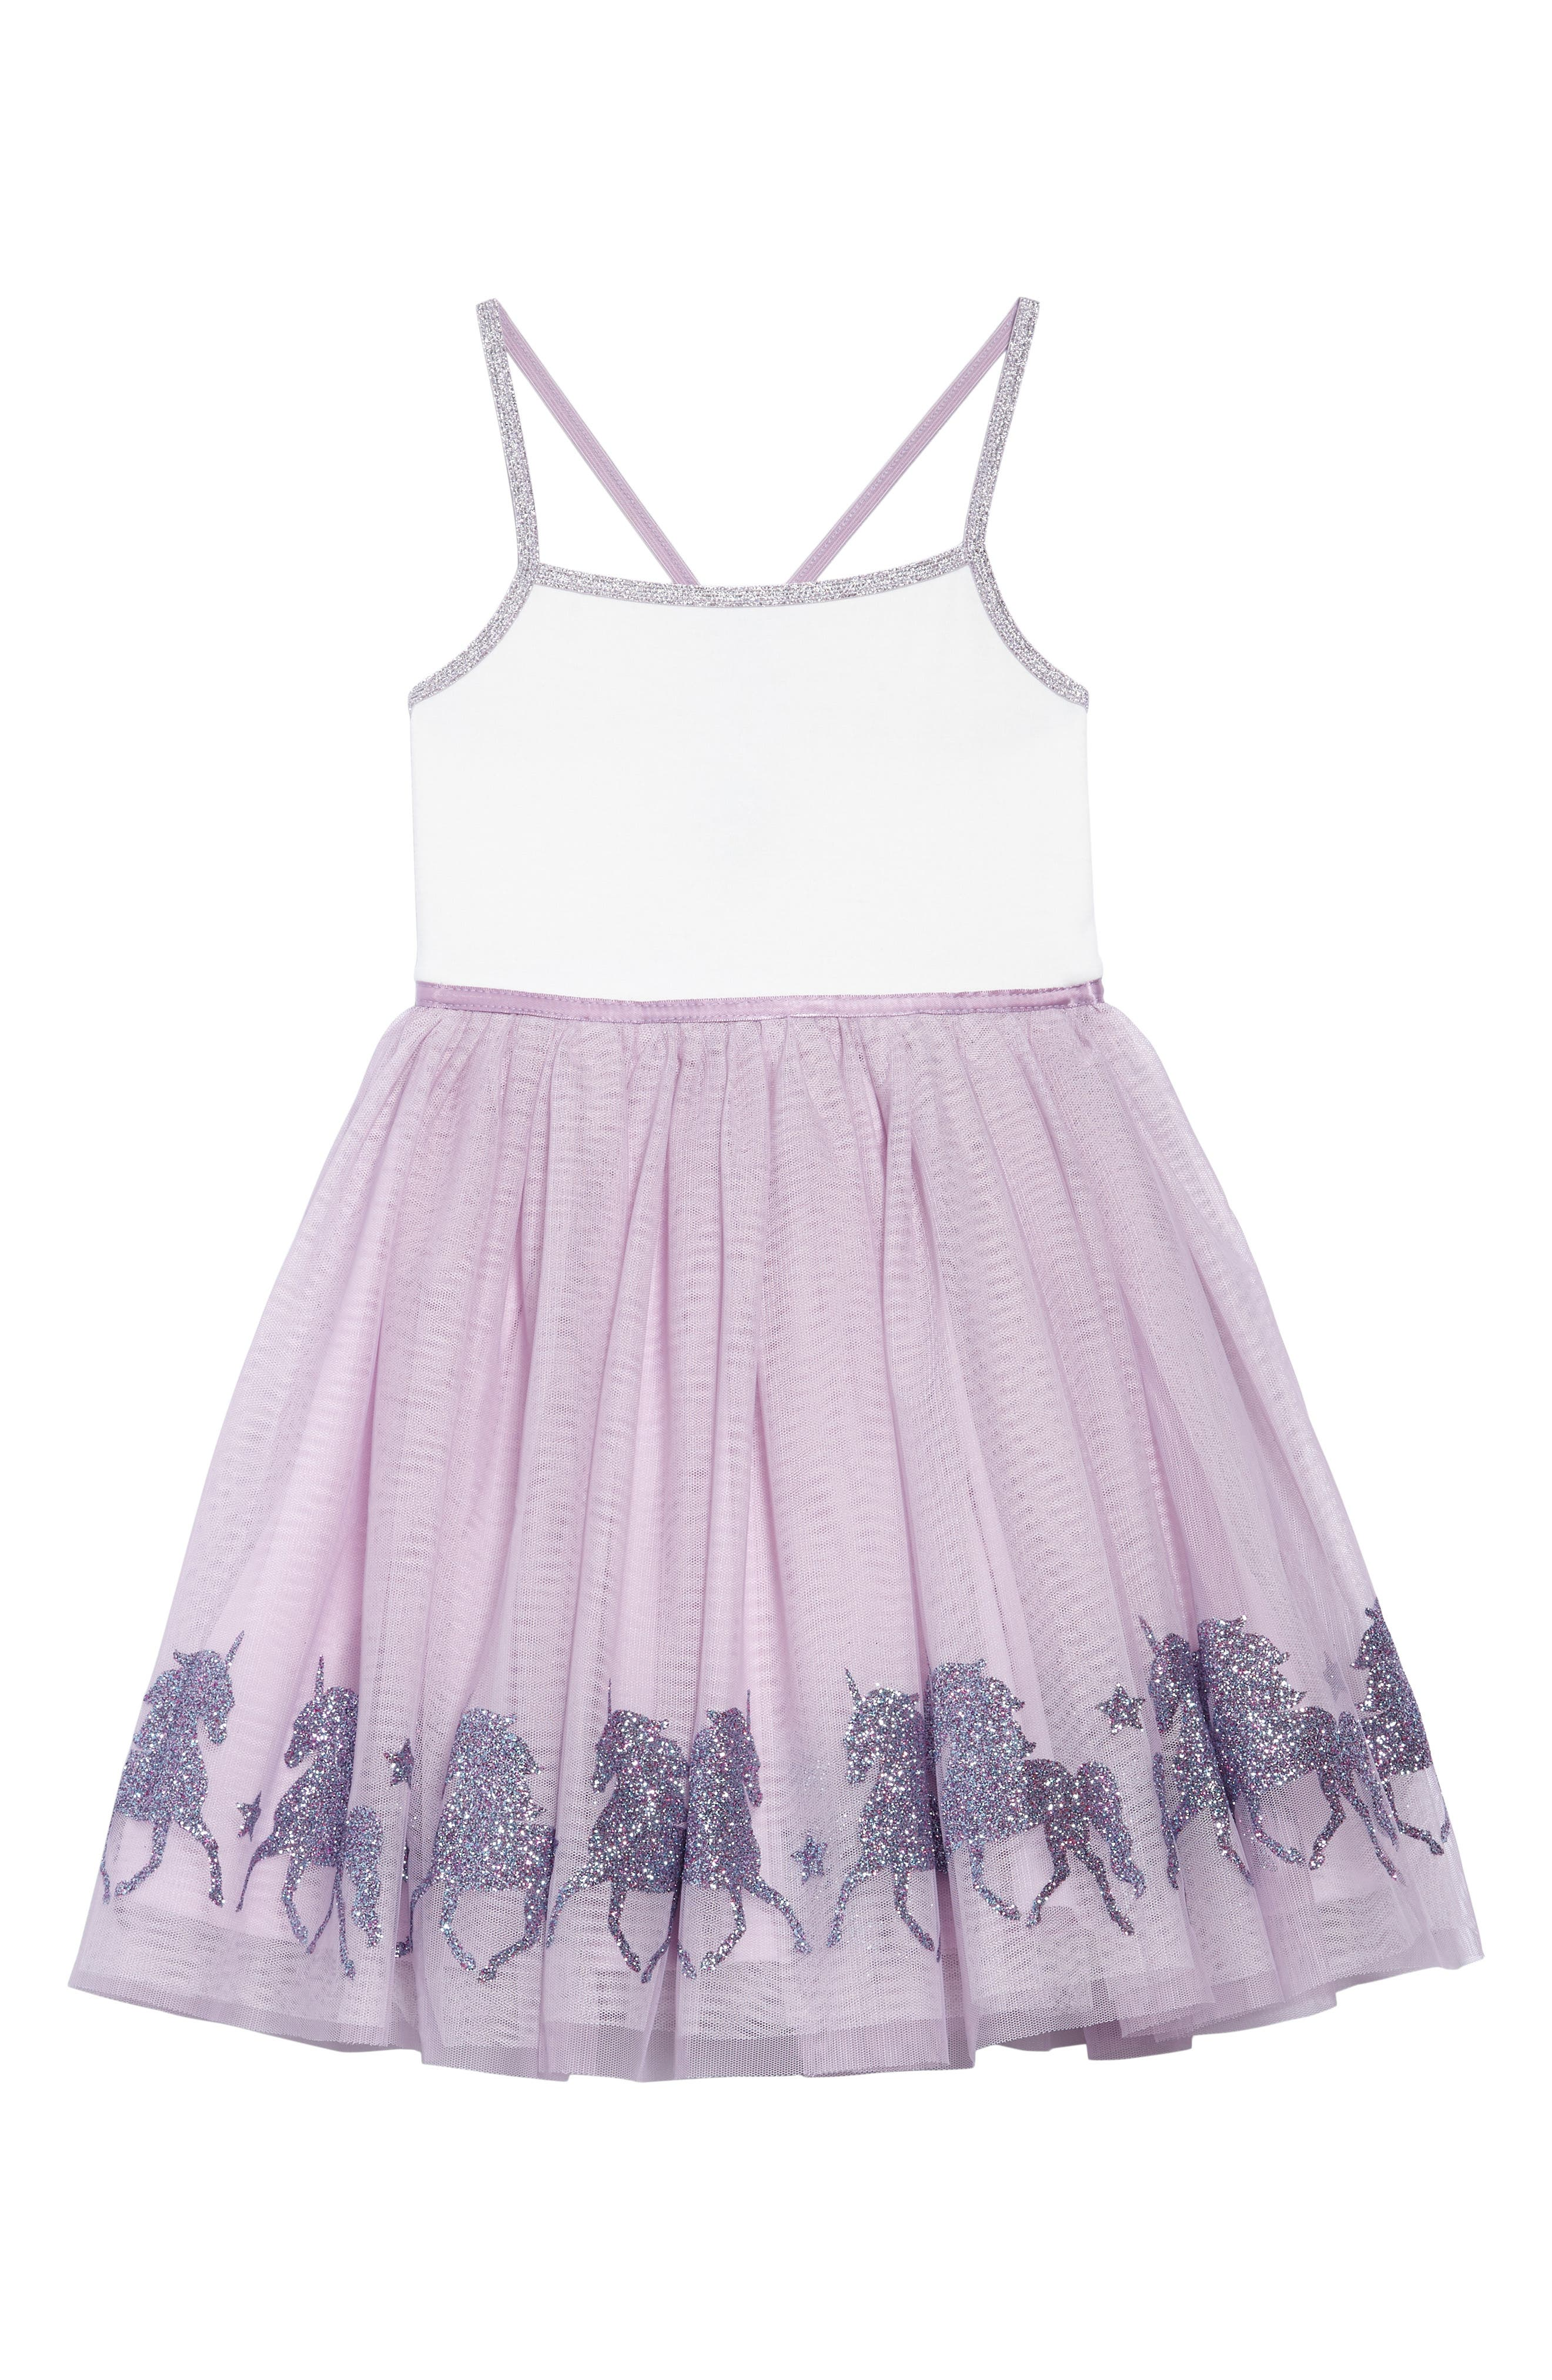 Glittery Unicorn Ballerina Dress,                         Main,                         color, LAVENDER